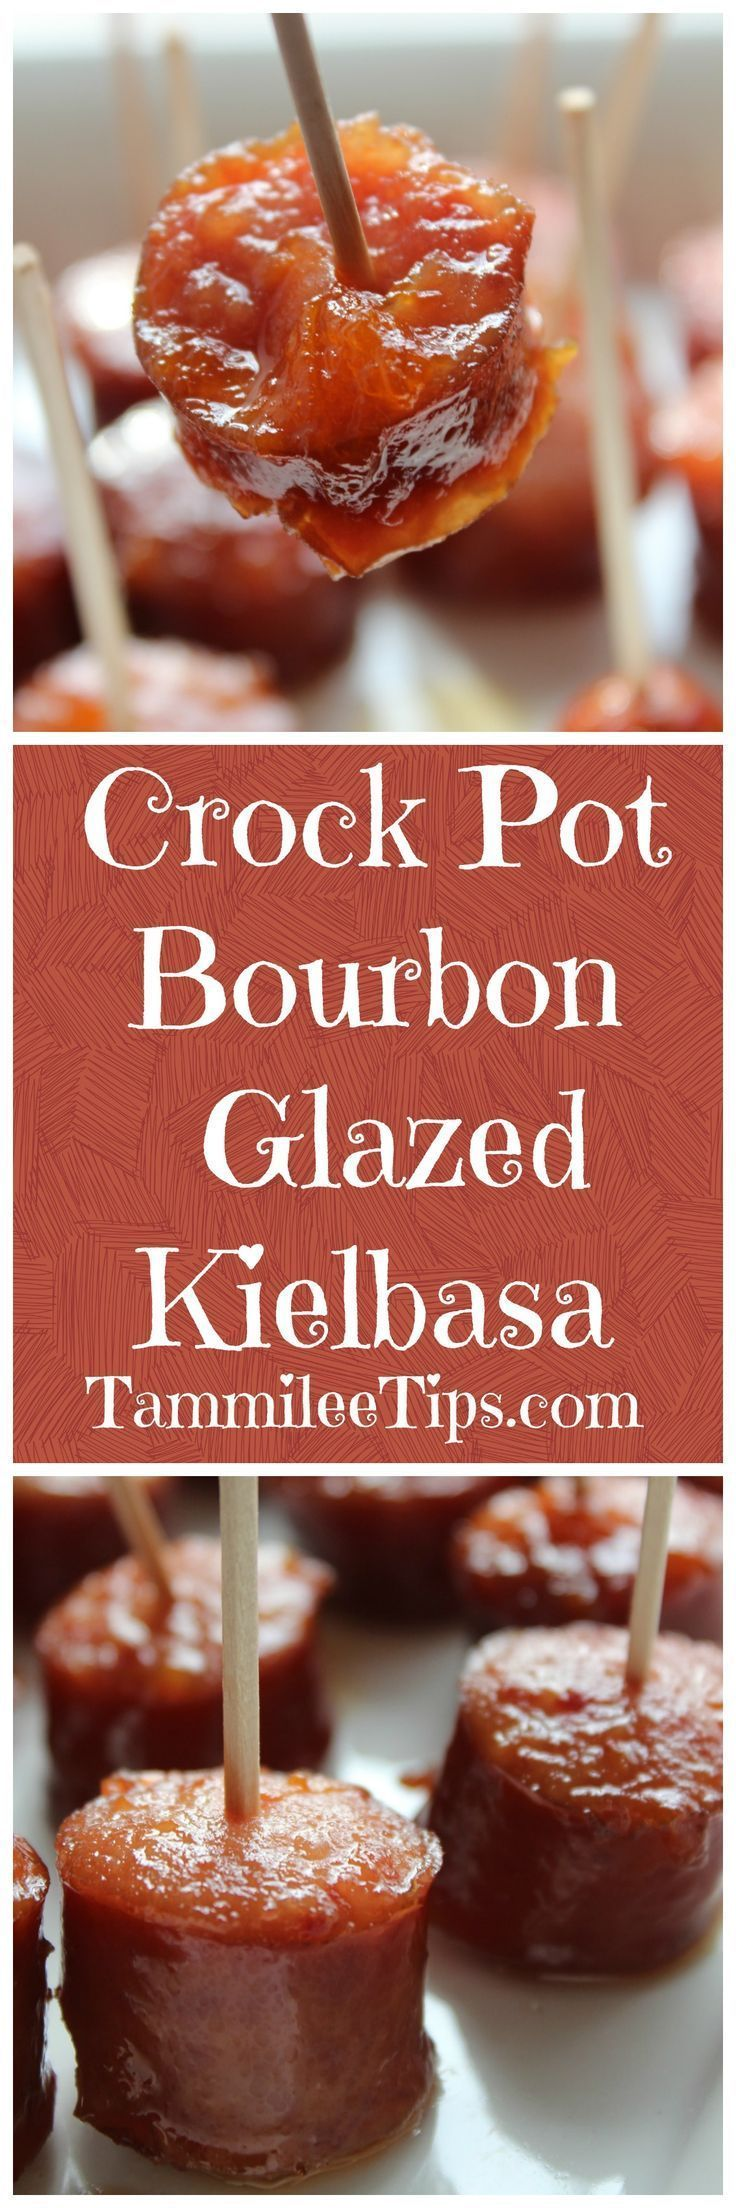 Crock Pot Bourbon Glazed Kielbasa Recipes